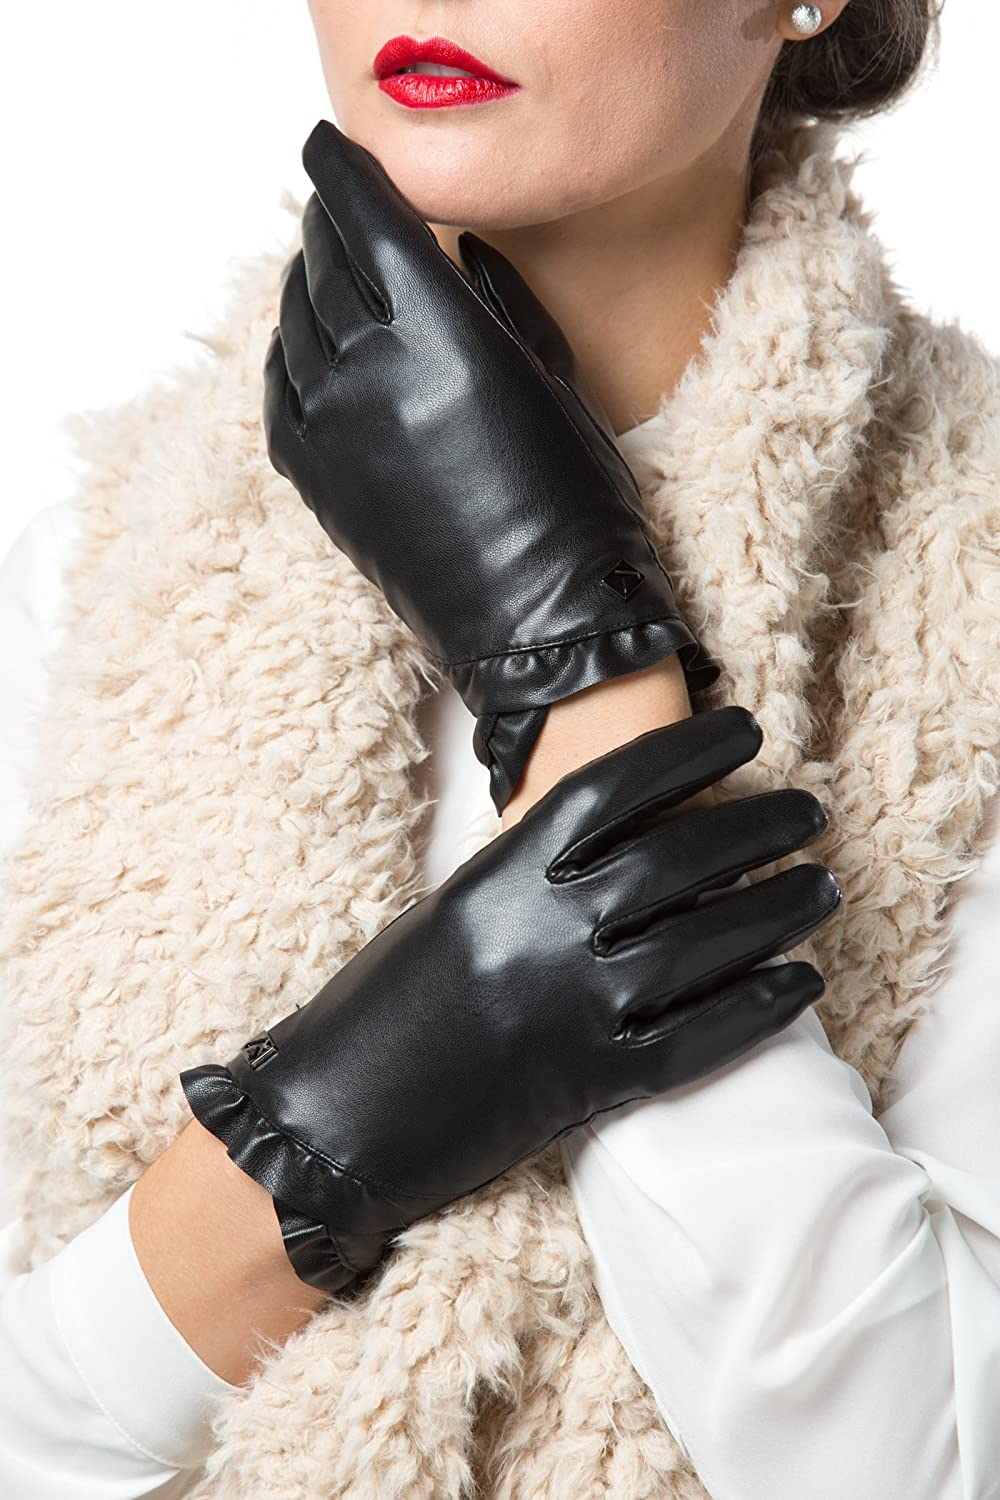 GALLERY SEVEN Women's Winter Gloves Warm Touchscreen Driving Texting Ladies Gloves